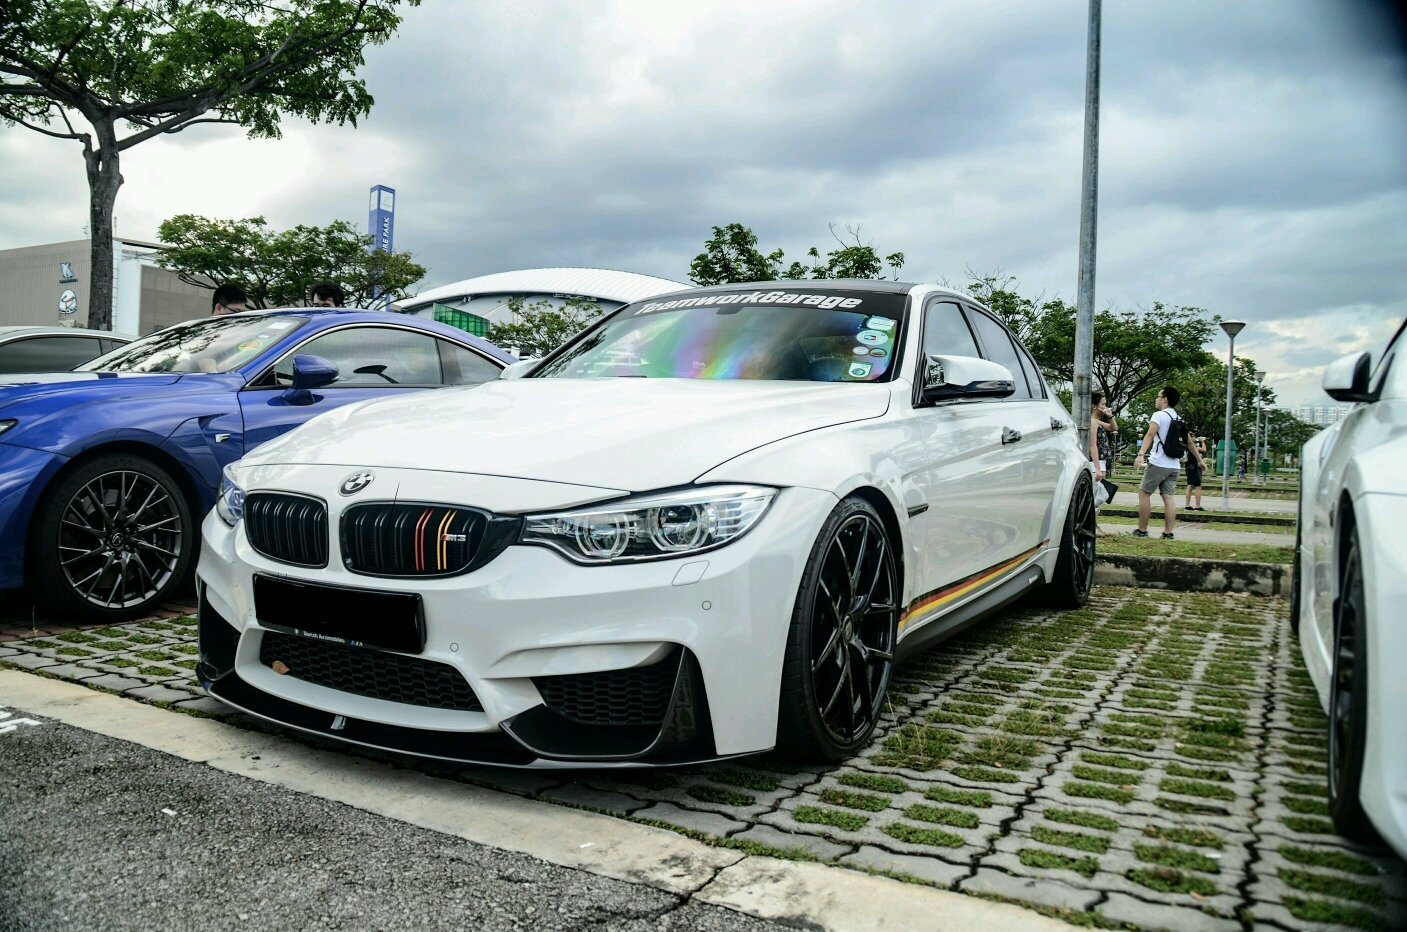 Awesome And Rare Bmw M3 Kitted